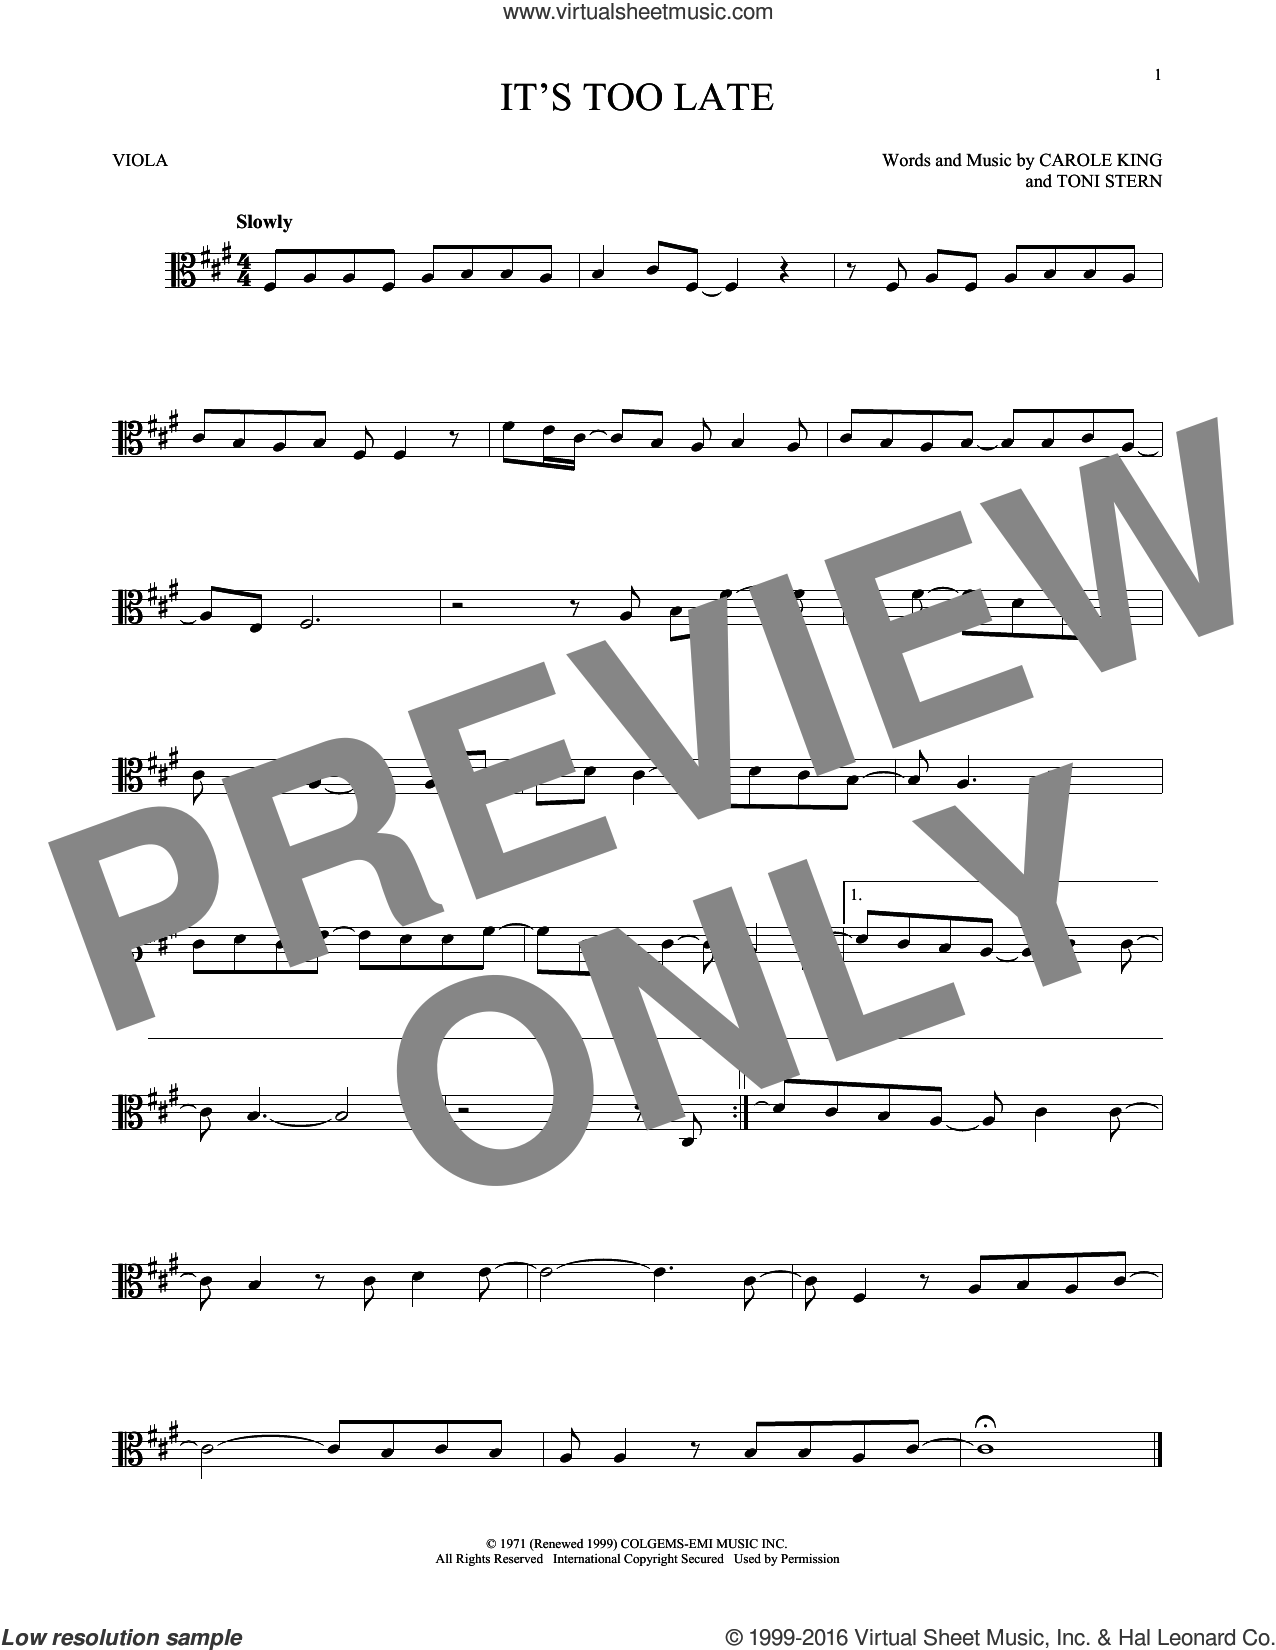 It's Too Late sheet music for viola solo by Carole King, Gloria Estefan and Toni Stern, intermediate skill level